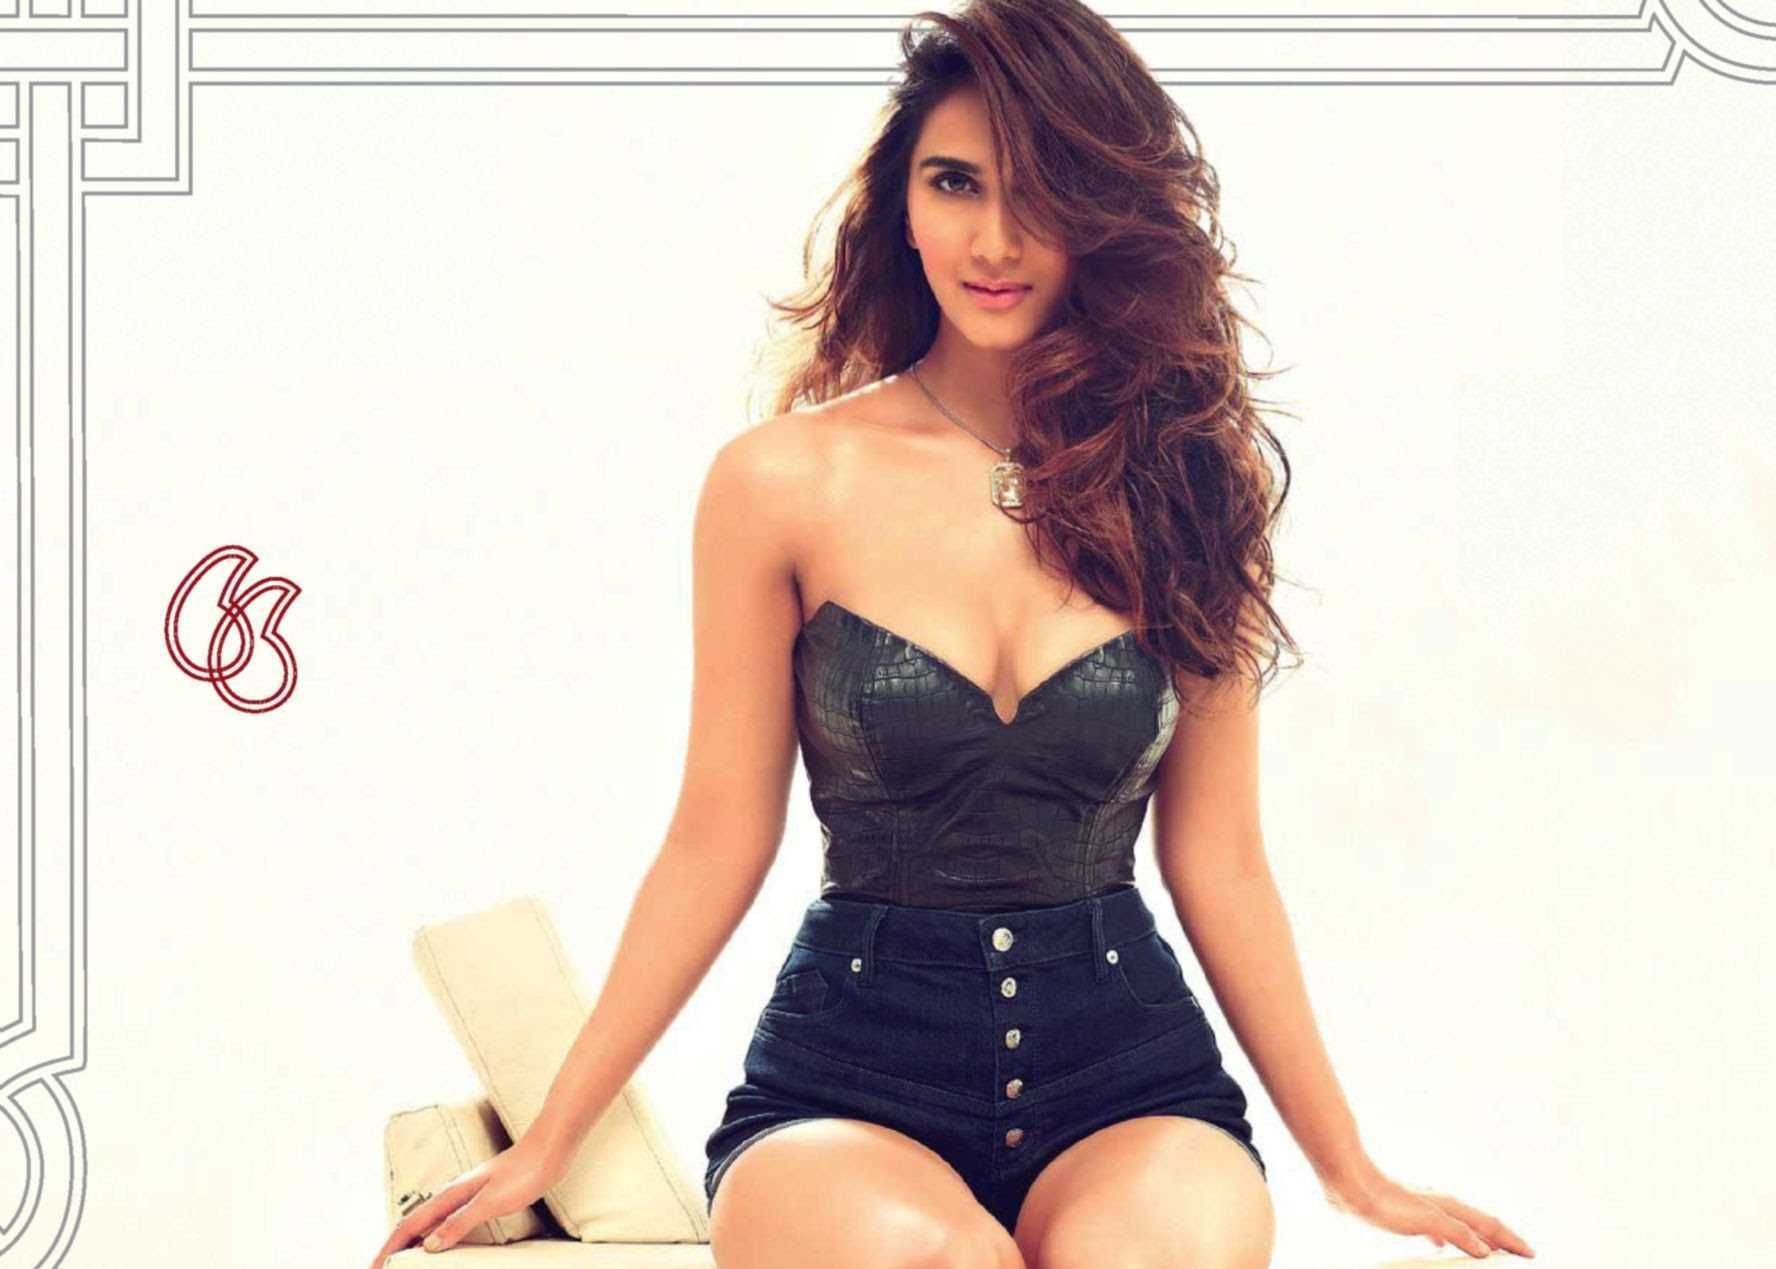 Why do people criticize Vaani Kapoor?